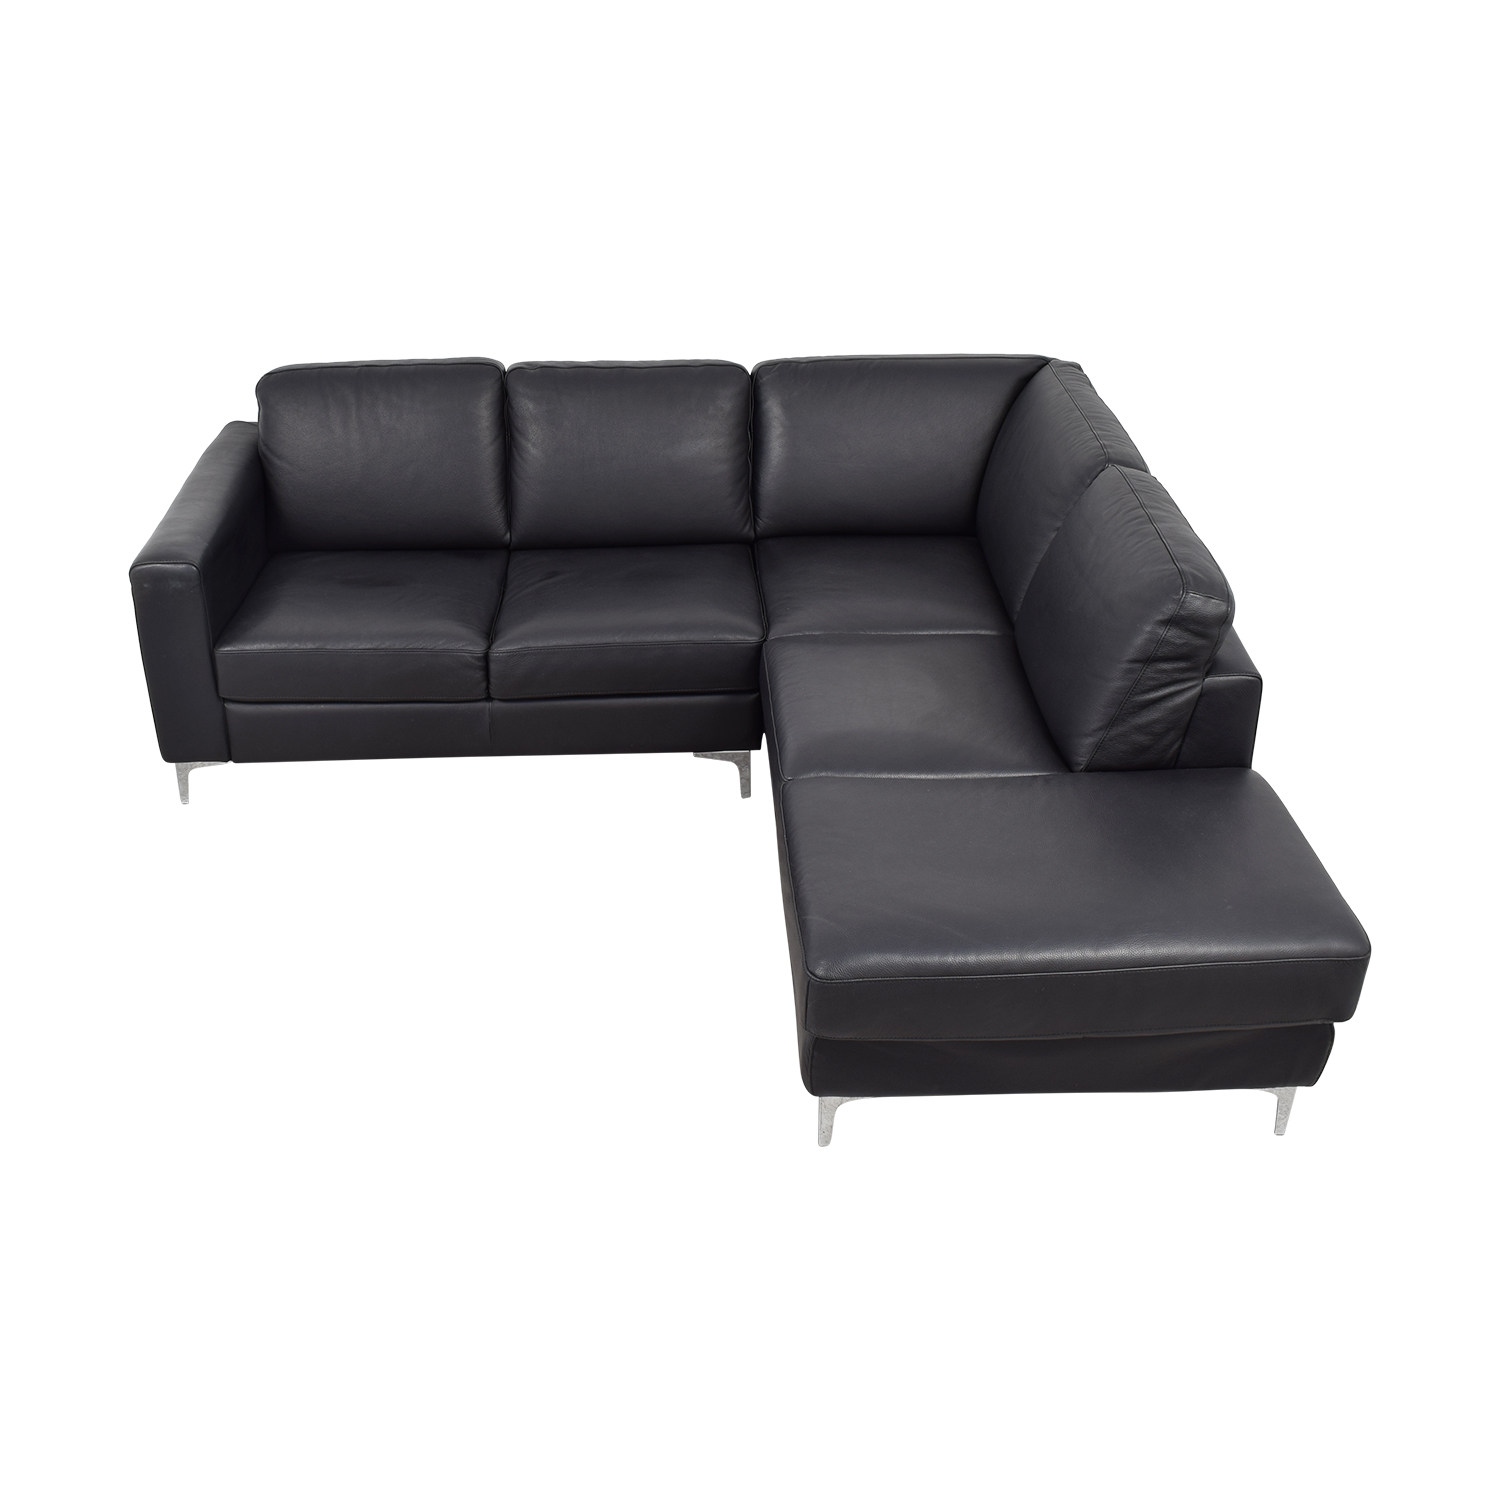 54% OFF - Cuborosso Cubo Rosso Black Leather L-Shaped Sectional / Sofas